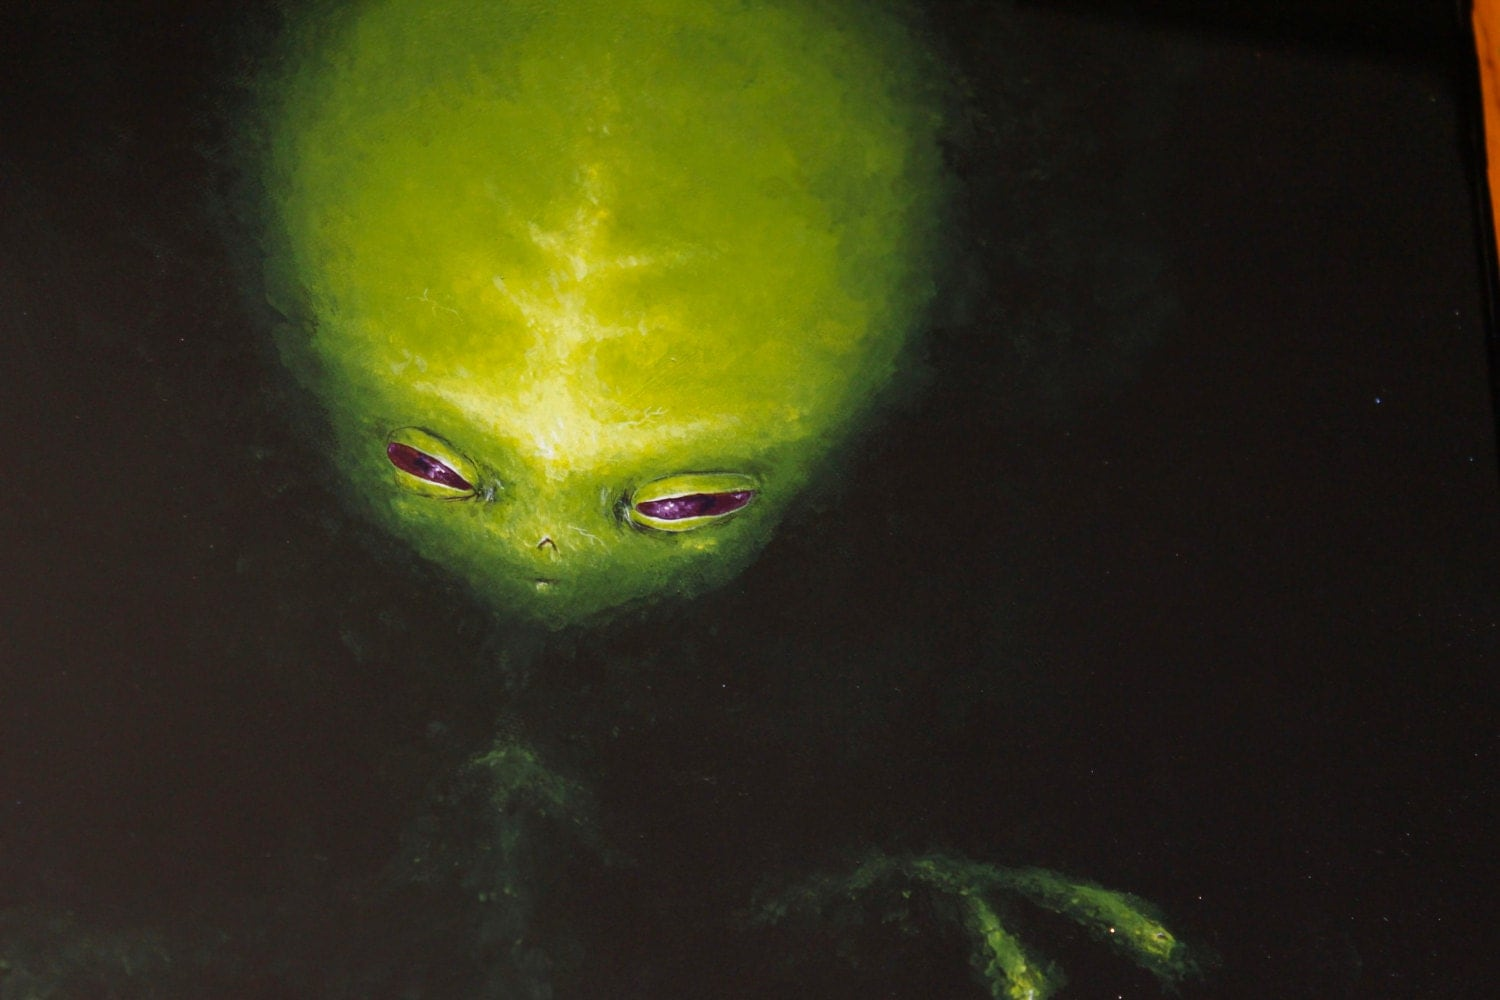 ALIEN 16x20 acrylic painting by Mike Boston - mikeboston